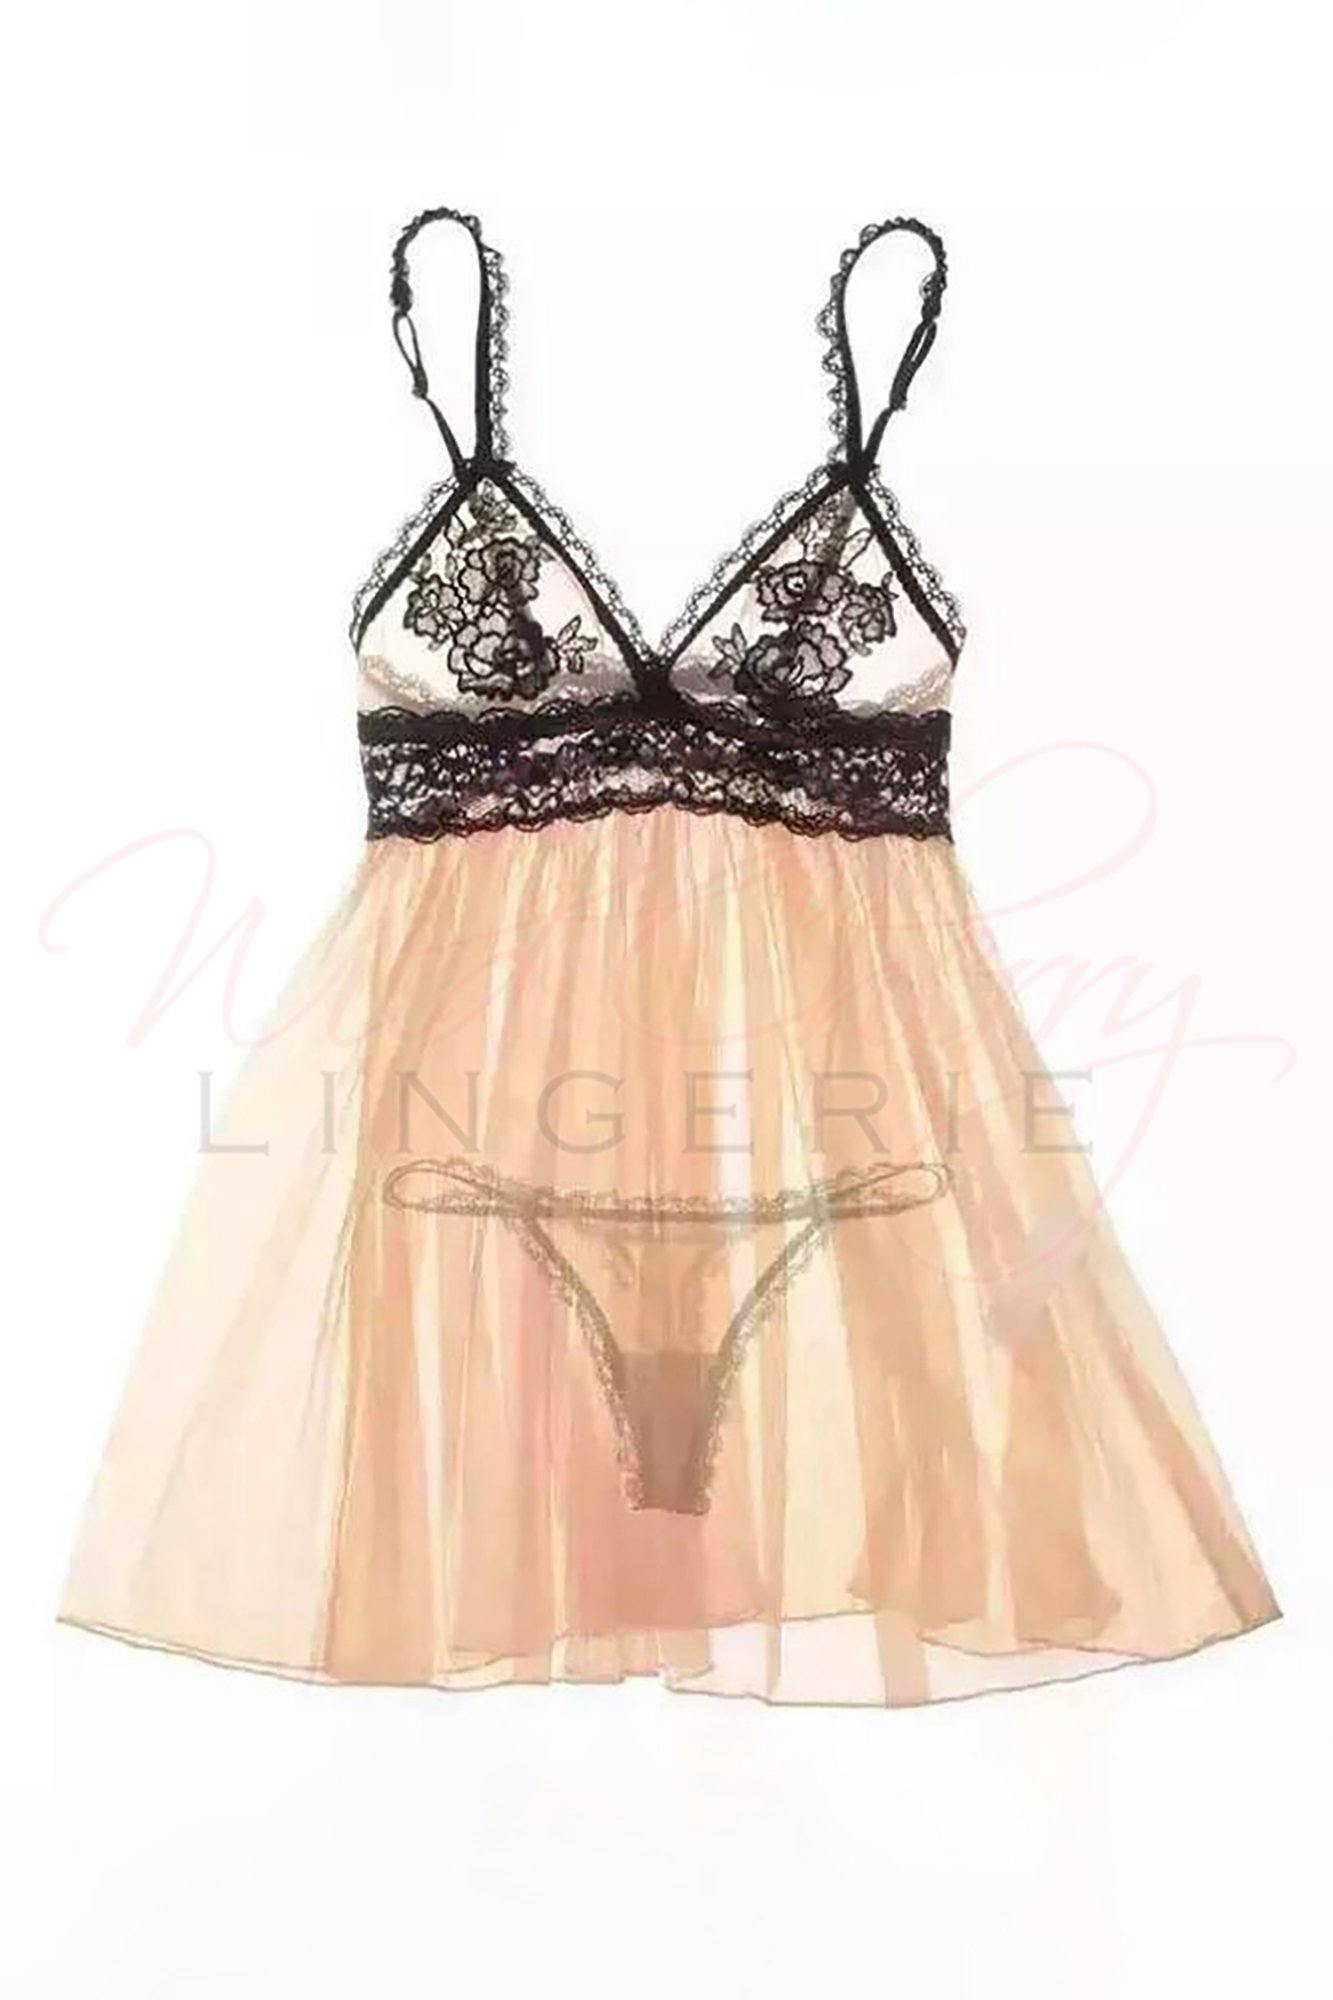 Sheer Beige & Black Babydoll Set